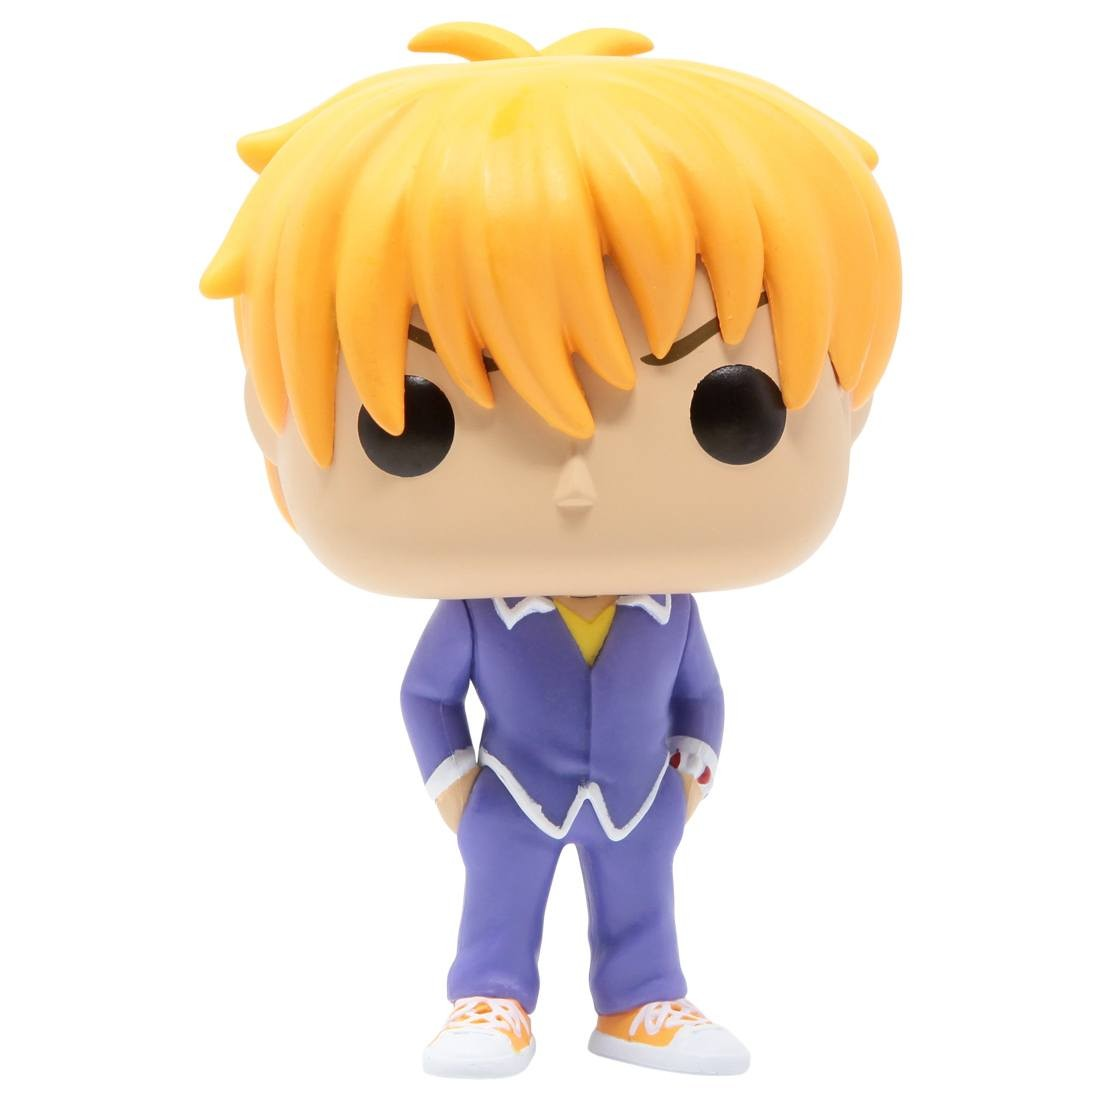 Funko POP Animation Fruits Basket - Kyo Sohma (purple)